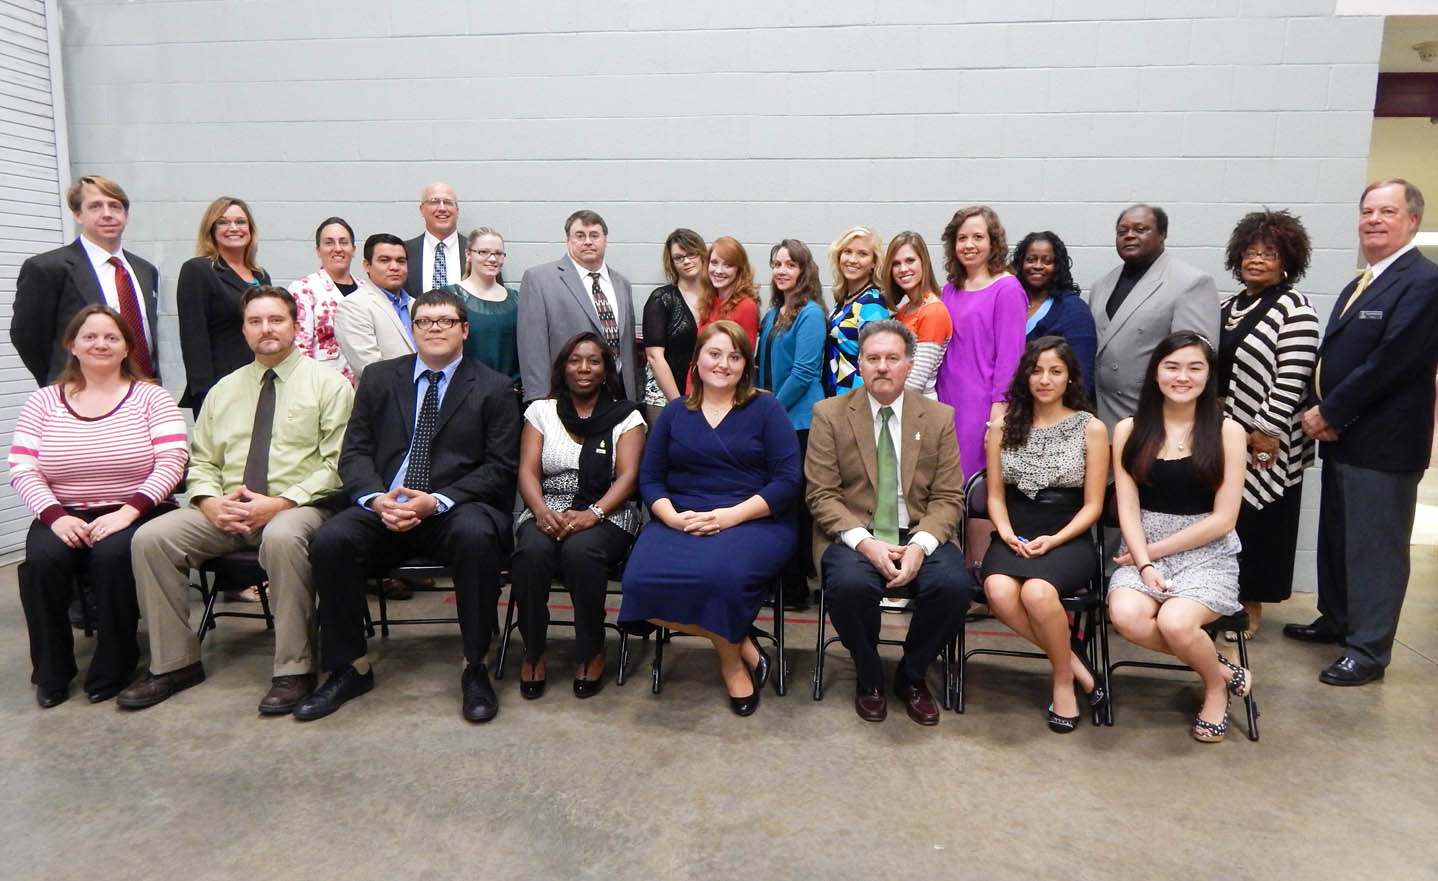 "Click to enlarge,  Central Carolina Community College's chapter of the Phi Theta Kappa International Honor Society celebrated the induction of 28 new members during an Oct. 29 ceremony at the Dennis A. Wicker Civic Center. The fall inductees (not pictured in order) are: Eric Brinkman, Elizabeth Budny, Erica Davidson, Scott Duff, Lori Dunlap, Oscar Hernandez, Michael Johnson, Anastasia Krick, Madison Lilly, Amy Mauldin, Teresa Priestner, Tonia Rogers, and Katelin Zimmerman, all of Lee County; Patricia Nettles, Logan Brooks, Ronnie Ross, Ashley Crosby, Emily Humphries and Angela Humphries, all of Chatham County; David McAllister, of Harnett County; Leah Dannelley and Laura Diver, both of Moore County; Ashley Alderson, Rhonda Hamilton, Nicholas Heurich, Jeremy Knoll, and Elma Matthews, all of Cumberland County; and Erin O'Rawe, of Wake County. Pictured with the inductees who attended the ceremony are the chapter officers (first row, starting third from left) Seth Tom, of Lee County, treasurer; Koren Hailey, vice president-Harnett County; Mary Cooper, of Lee County, president; Eric Brinkman, vice president-Lee County; and Nathalia Cruz, of Lee County, recording secretary. Others pictured with the inductees are co-advisors Mark Hall (back, left) and Mike Neal (back, fourth from left); guest speaker Margaret Murchison (back, second from right), WWGP Broadcasting Corp. News and Public Services director; and (back, right) CCCC President Bud Marchant. Phi Theta Kappa is the official honor society for two-year colleges and the largest honor society in American higher education. For more information about Phi Theta Kappa at CCCC, contact Mark Hall at mhall@cccc.edu or 919-718-7422; Mike Neal at mneal@cccc.edu or 919-718-7337, or visit www.cccc.edu and click on ""Phi Theta Kappa Honor Society"" in the ""A-Z Index."""